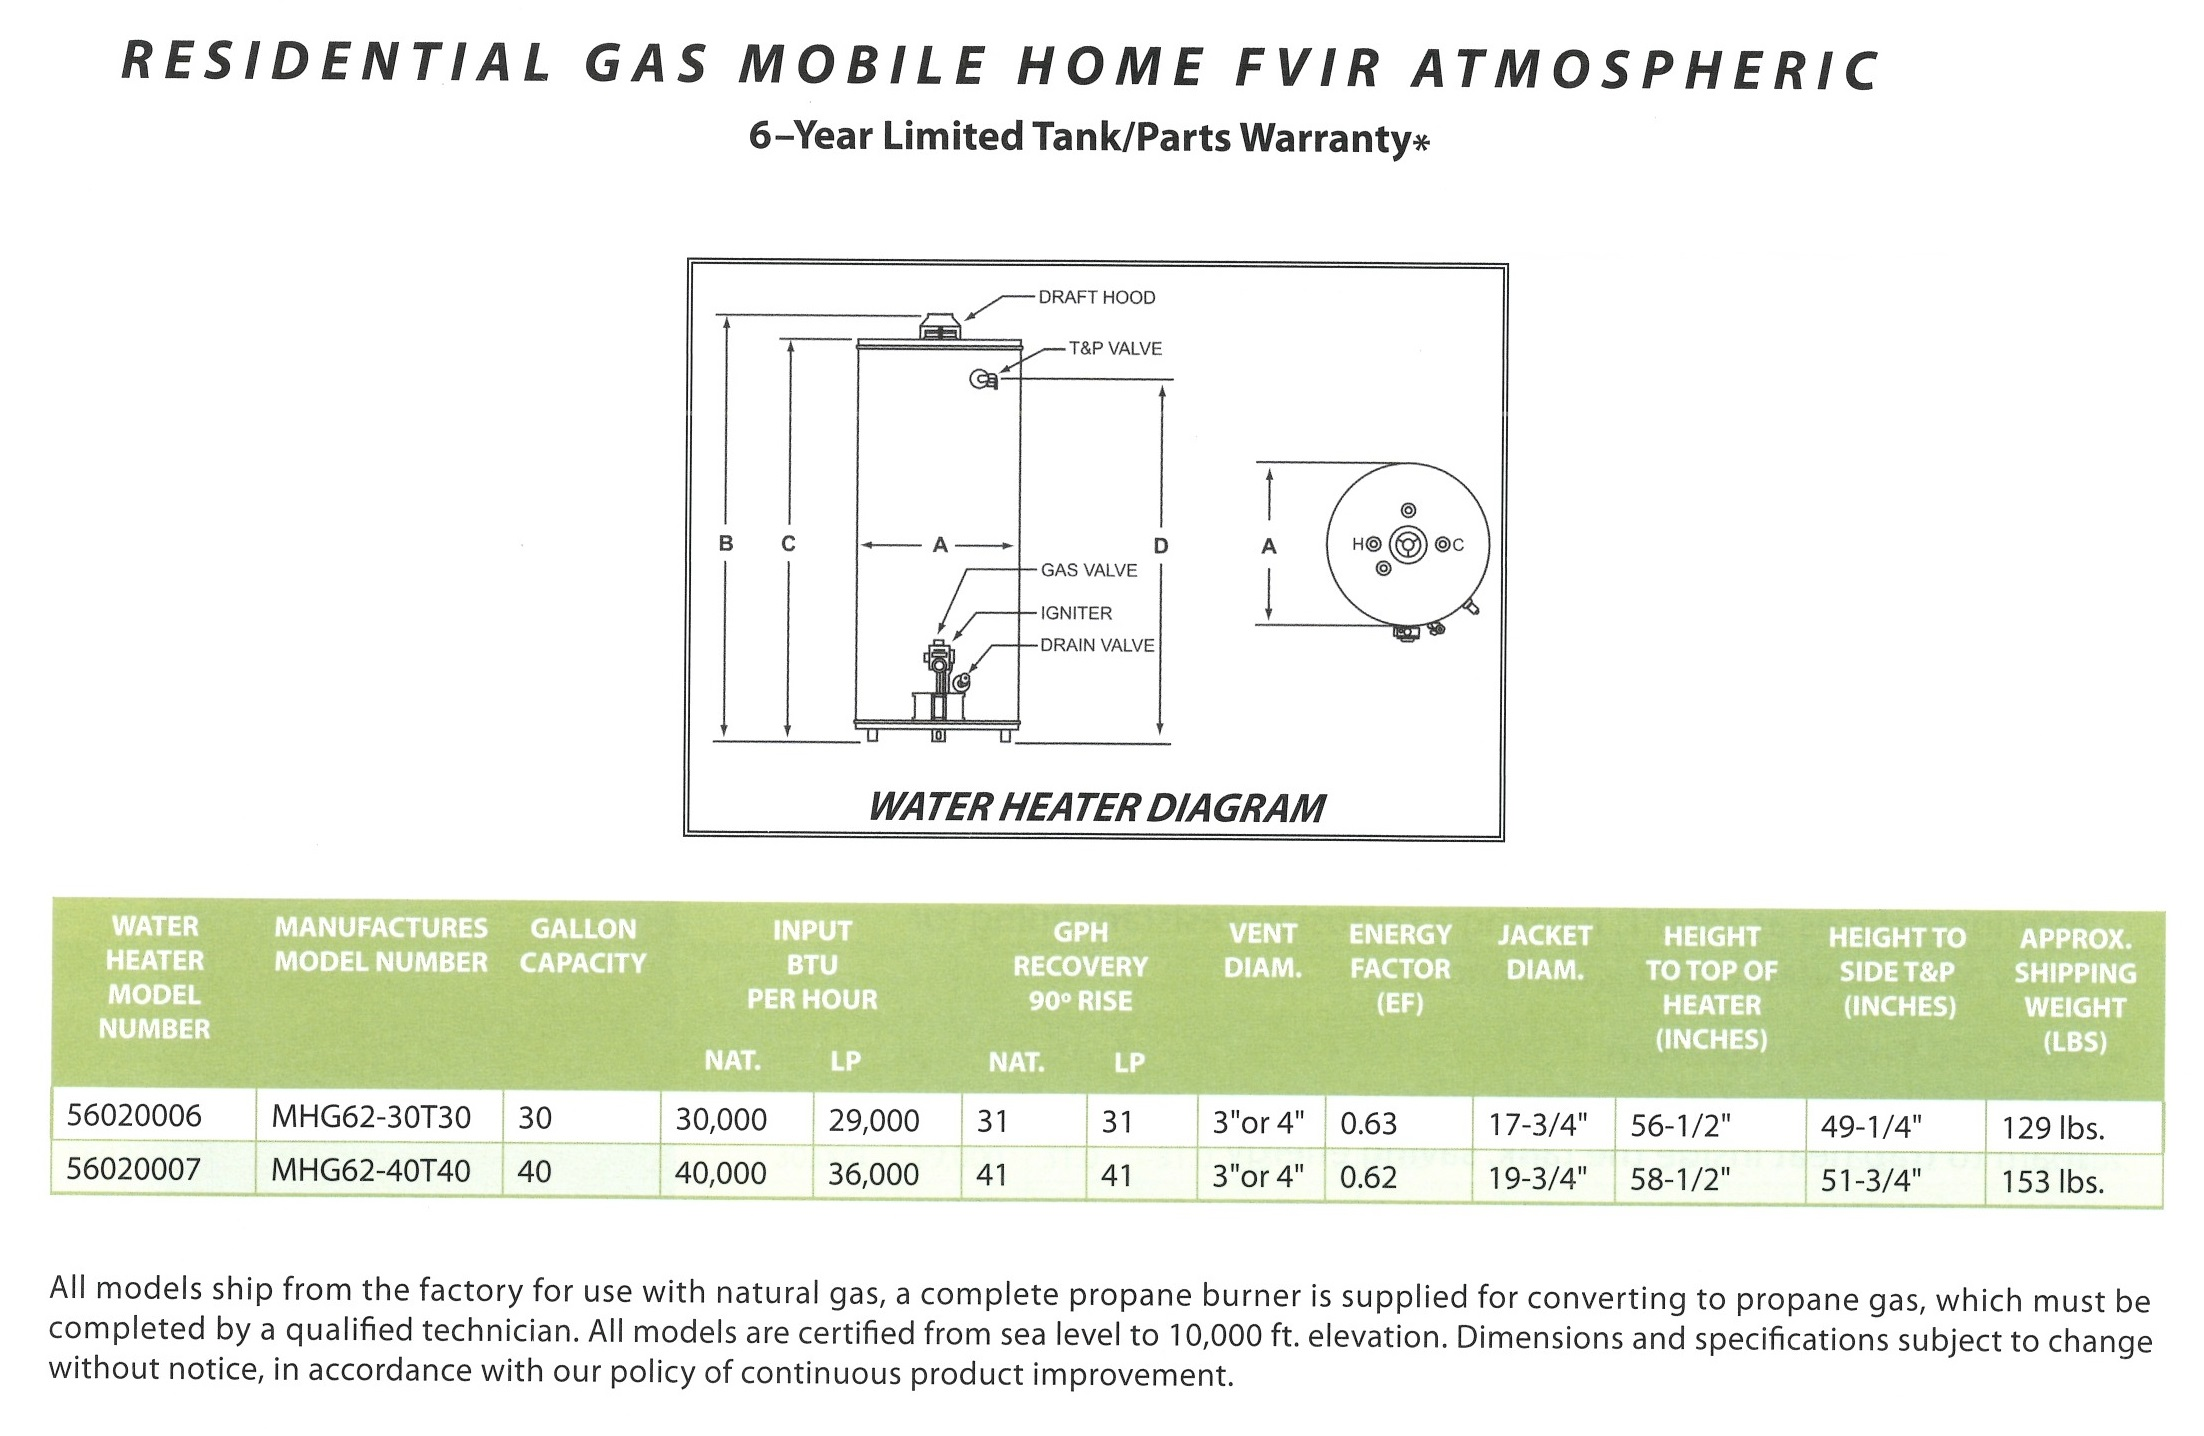 Residnetial gas Mobile Home FVIR Atmospheric